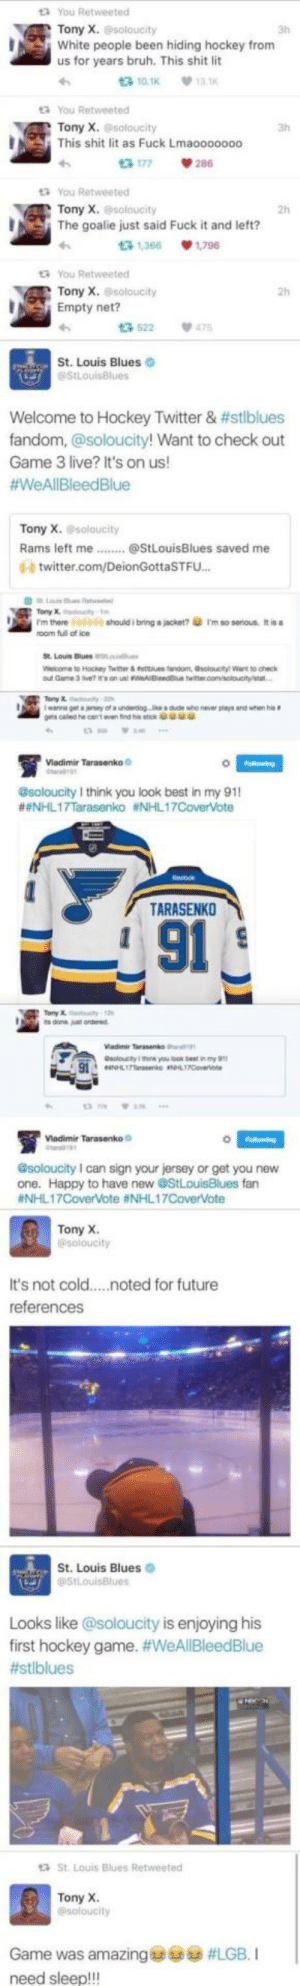 Wholesome_hockey: t3 You Retweeted  Tony X.soloucity  White people been hiding hockey from  us for years bruh. This shit lit  3h  t3 10.1K  13.1K  t You Retweeted  Tony X. @soloucity  This shit lit as Fuck Lmaooo0000  13 177  tYou Retweeted  Tony X.@soloucity  2h  The goalie just said Fuck it and left?  t3 1,366  1.796  t3 You Retweeted  Tony X. @soloucity  Empty net?  13 522  475  St. Louis Blues  StLouisBlues  Welcome to Hockey Twitter & #stlblues  fandom, @soloucity! Want to check out  Game 3 live? It's on us!  #WeAllBleedBlue  Tony X. soloucity  Rams left me.  @StLouisBlues saved me  0- twitter.com/DeionGottaSTFU...  Falowing  esoloucity I think you oo my 91  #NHL17Tarasenko #NHL17CoverVote  TARASENKO  91  @soloucity I can sign your jersey of get you hew  fan  #NHL17CoverVote #NHL17CoverVote  Tony X  @soloucity  It's not cold  .noted for future  references  St. Louis Blues  @StLouisBlues  Looks like @soloucity is enjoying his  first hockey game. #WeAllBleedBlue  #stlblues  St. Louis Blues Retweeted  Tony X.  @soloucity  Game was amazing  #LGB. I  need sleep!!! Wholesome_hockey